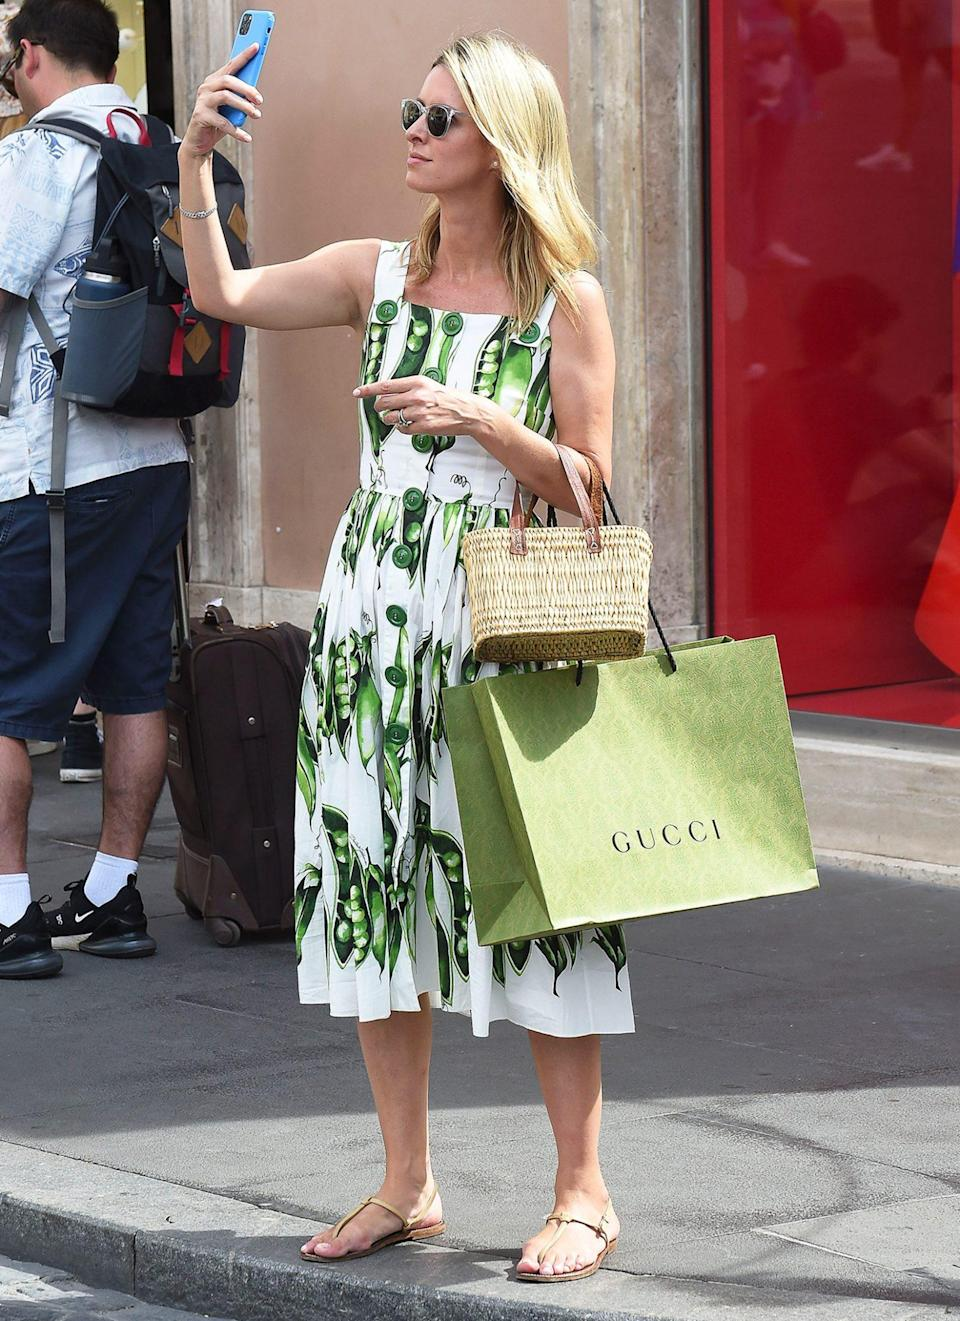 <p>Nicky Hilton enjoys a family trip to Rome while shopping with mom Kathy Hilton before joining dad Richard Hilton for lunch.</p>